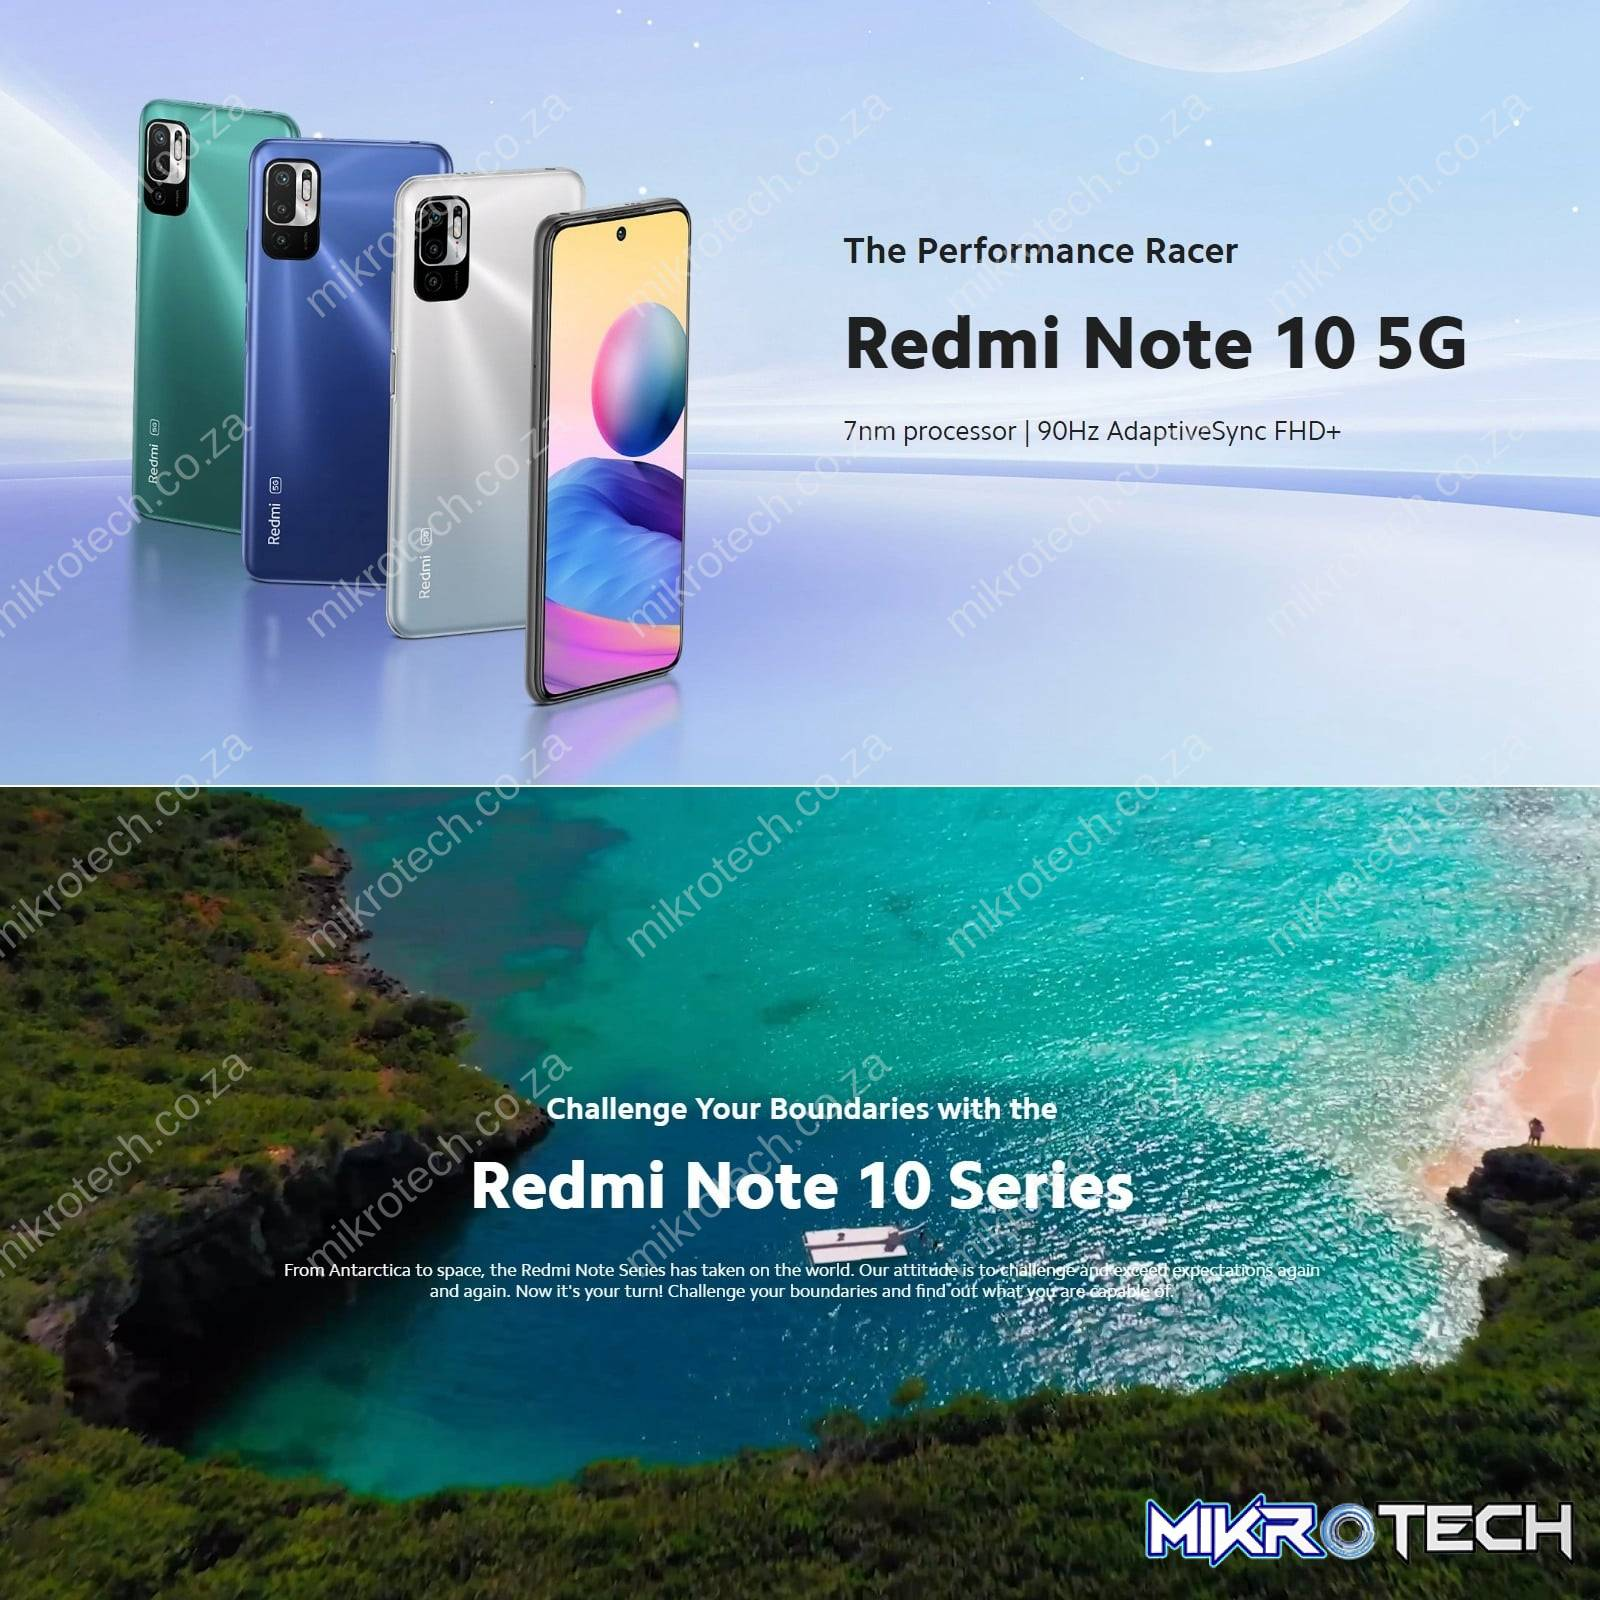 Xiaomi Redmi Note 10 5G Android Smartphone (Google Play Not Supported)